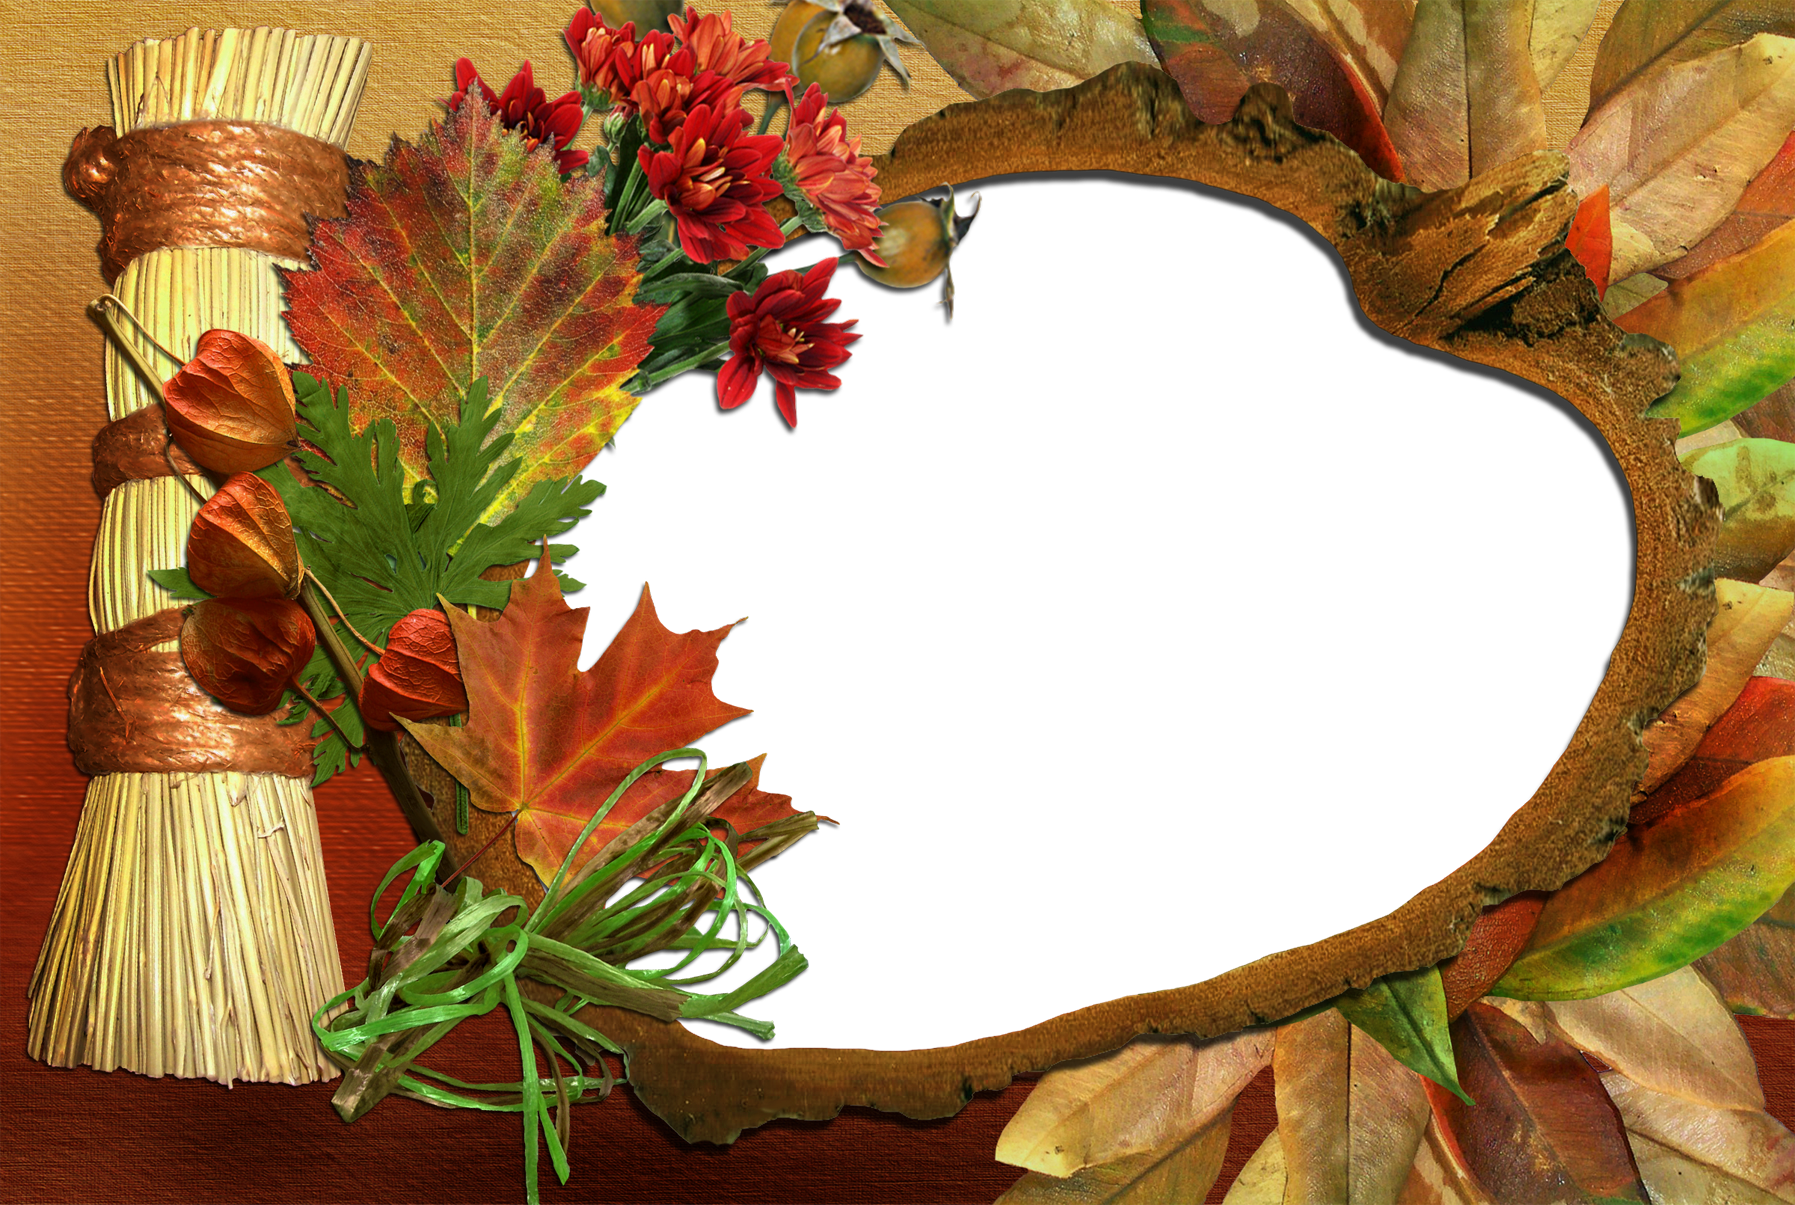 Transparent frame png. Fall gallery yopriceville high